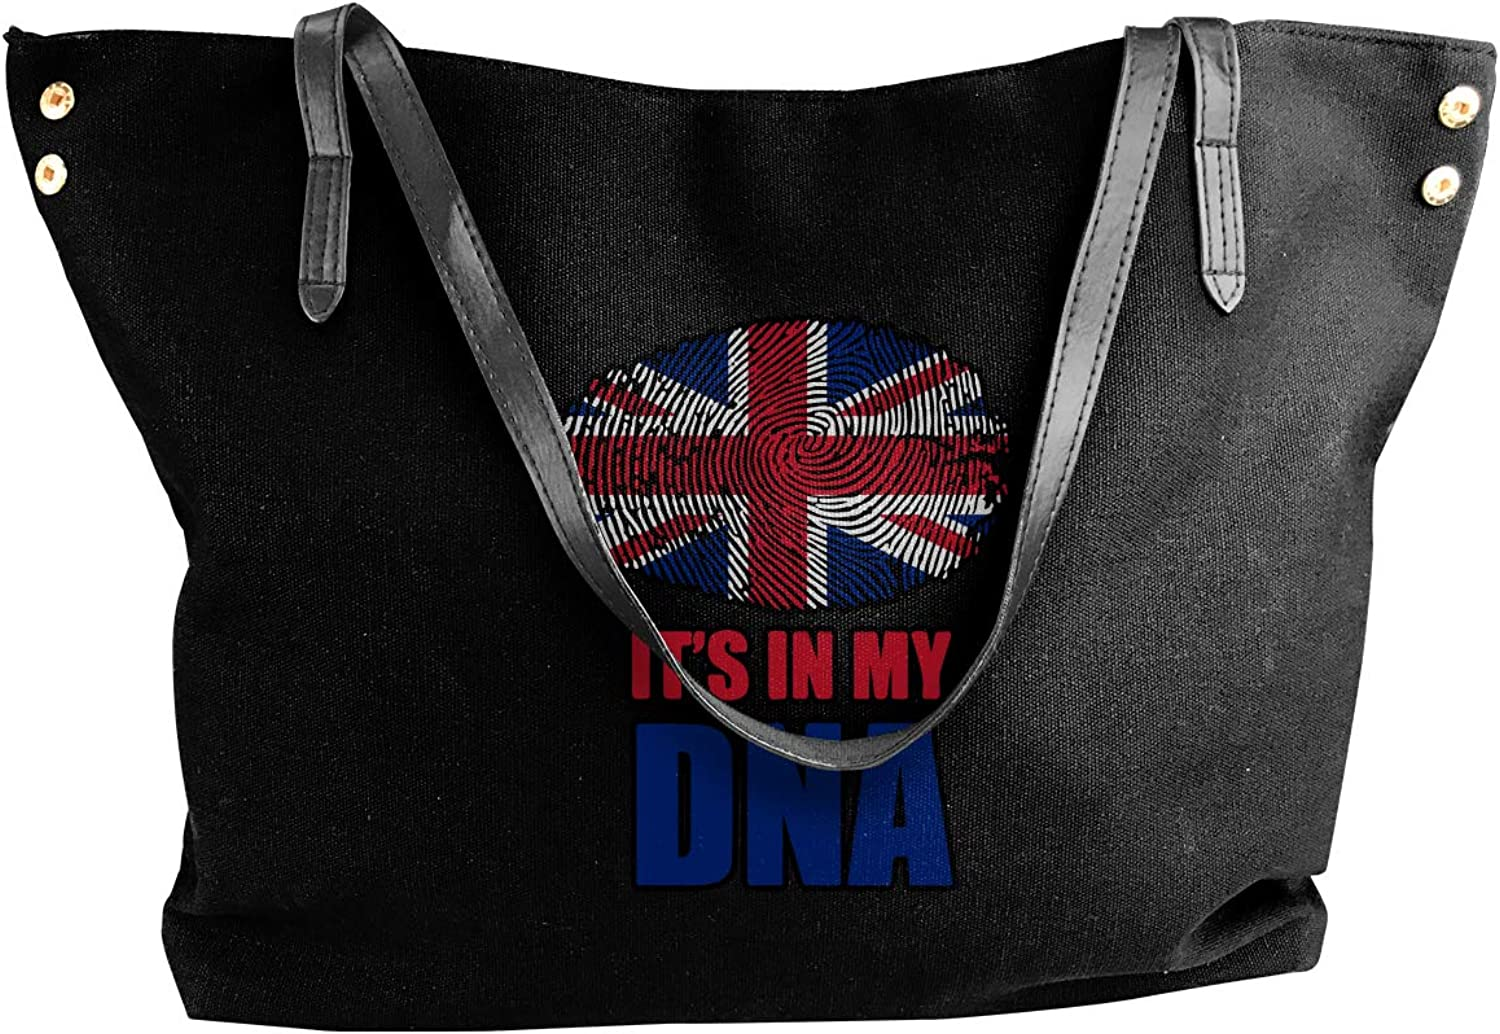 British It's In My DNA Women'S Casual Canvas Sling Bag For Travel Work Bag